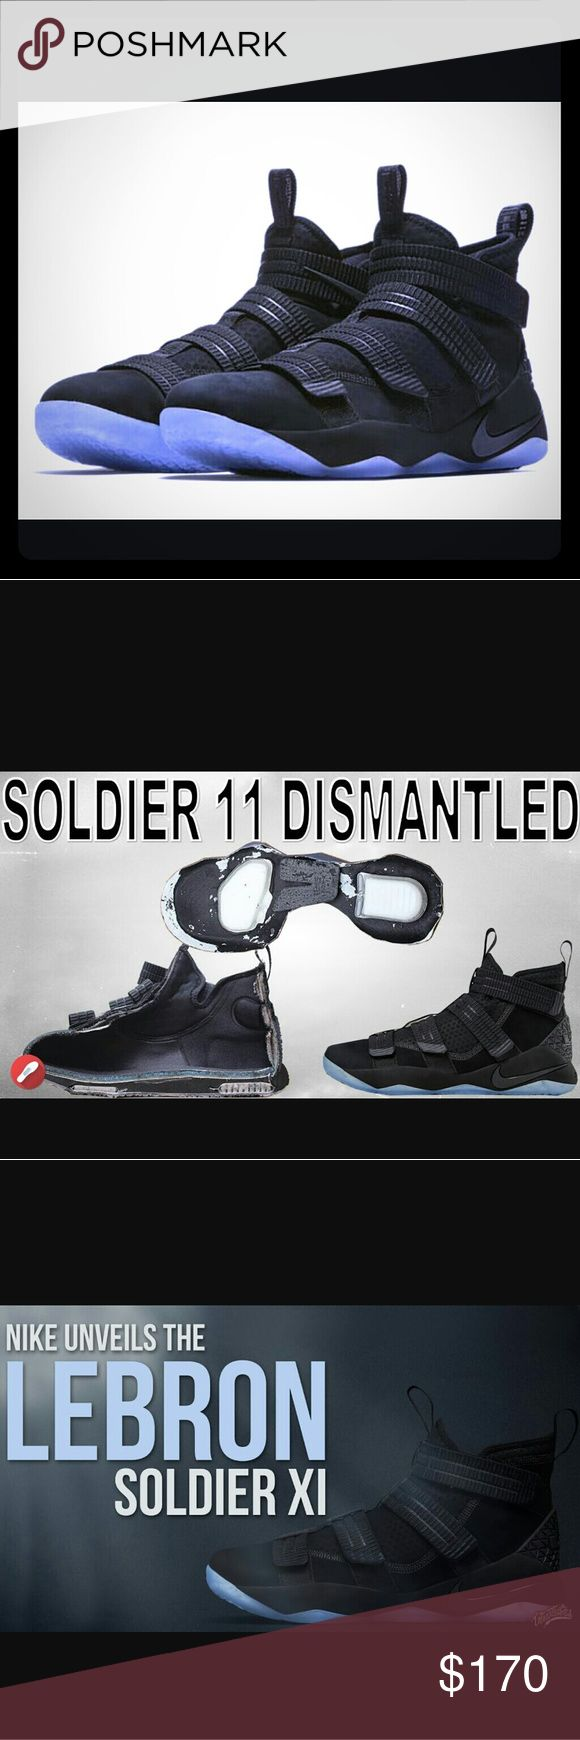 NIKE LEBRON JAMES SOLDIER 11 SNEAKERS SIZE 12 NEW LEBRON SOLDIER 11 SFG BLACK ICE COLORWAYS SNEAKERS SIZE 12M RELEASED ON MAY 31ST 2017 Nike Shoes Sneakers